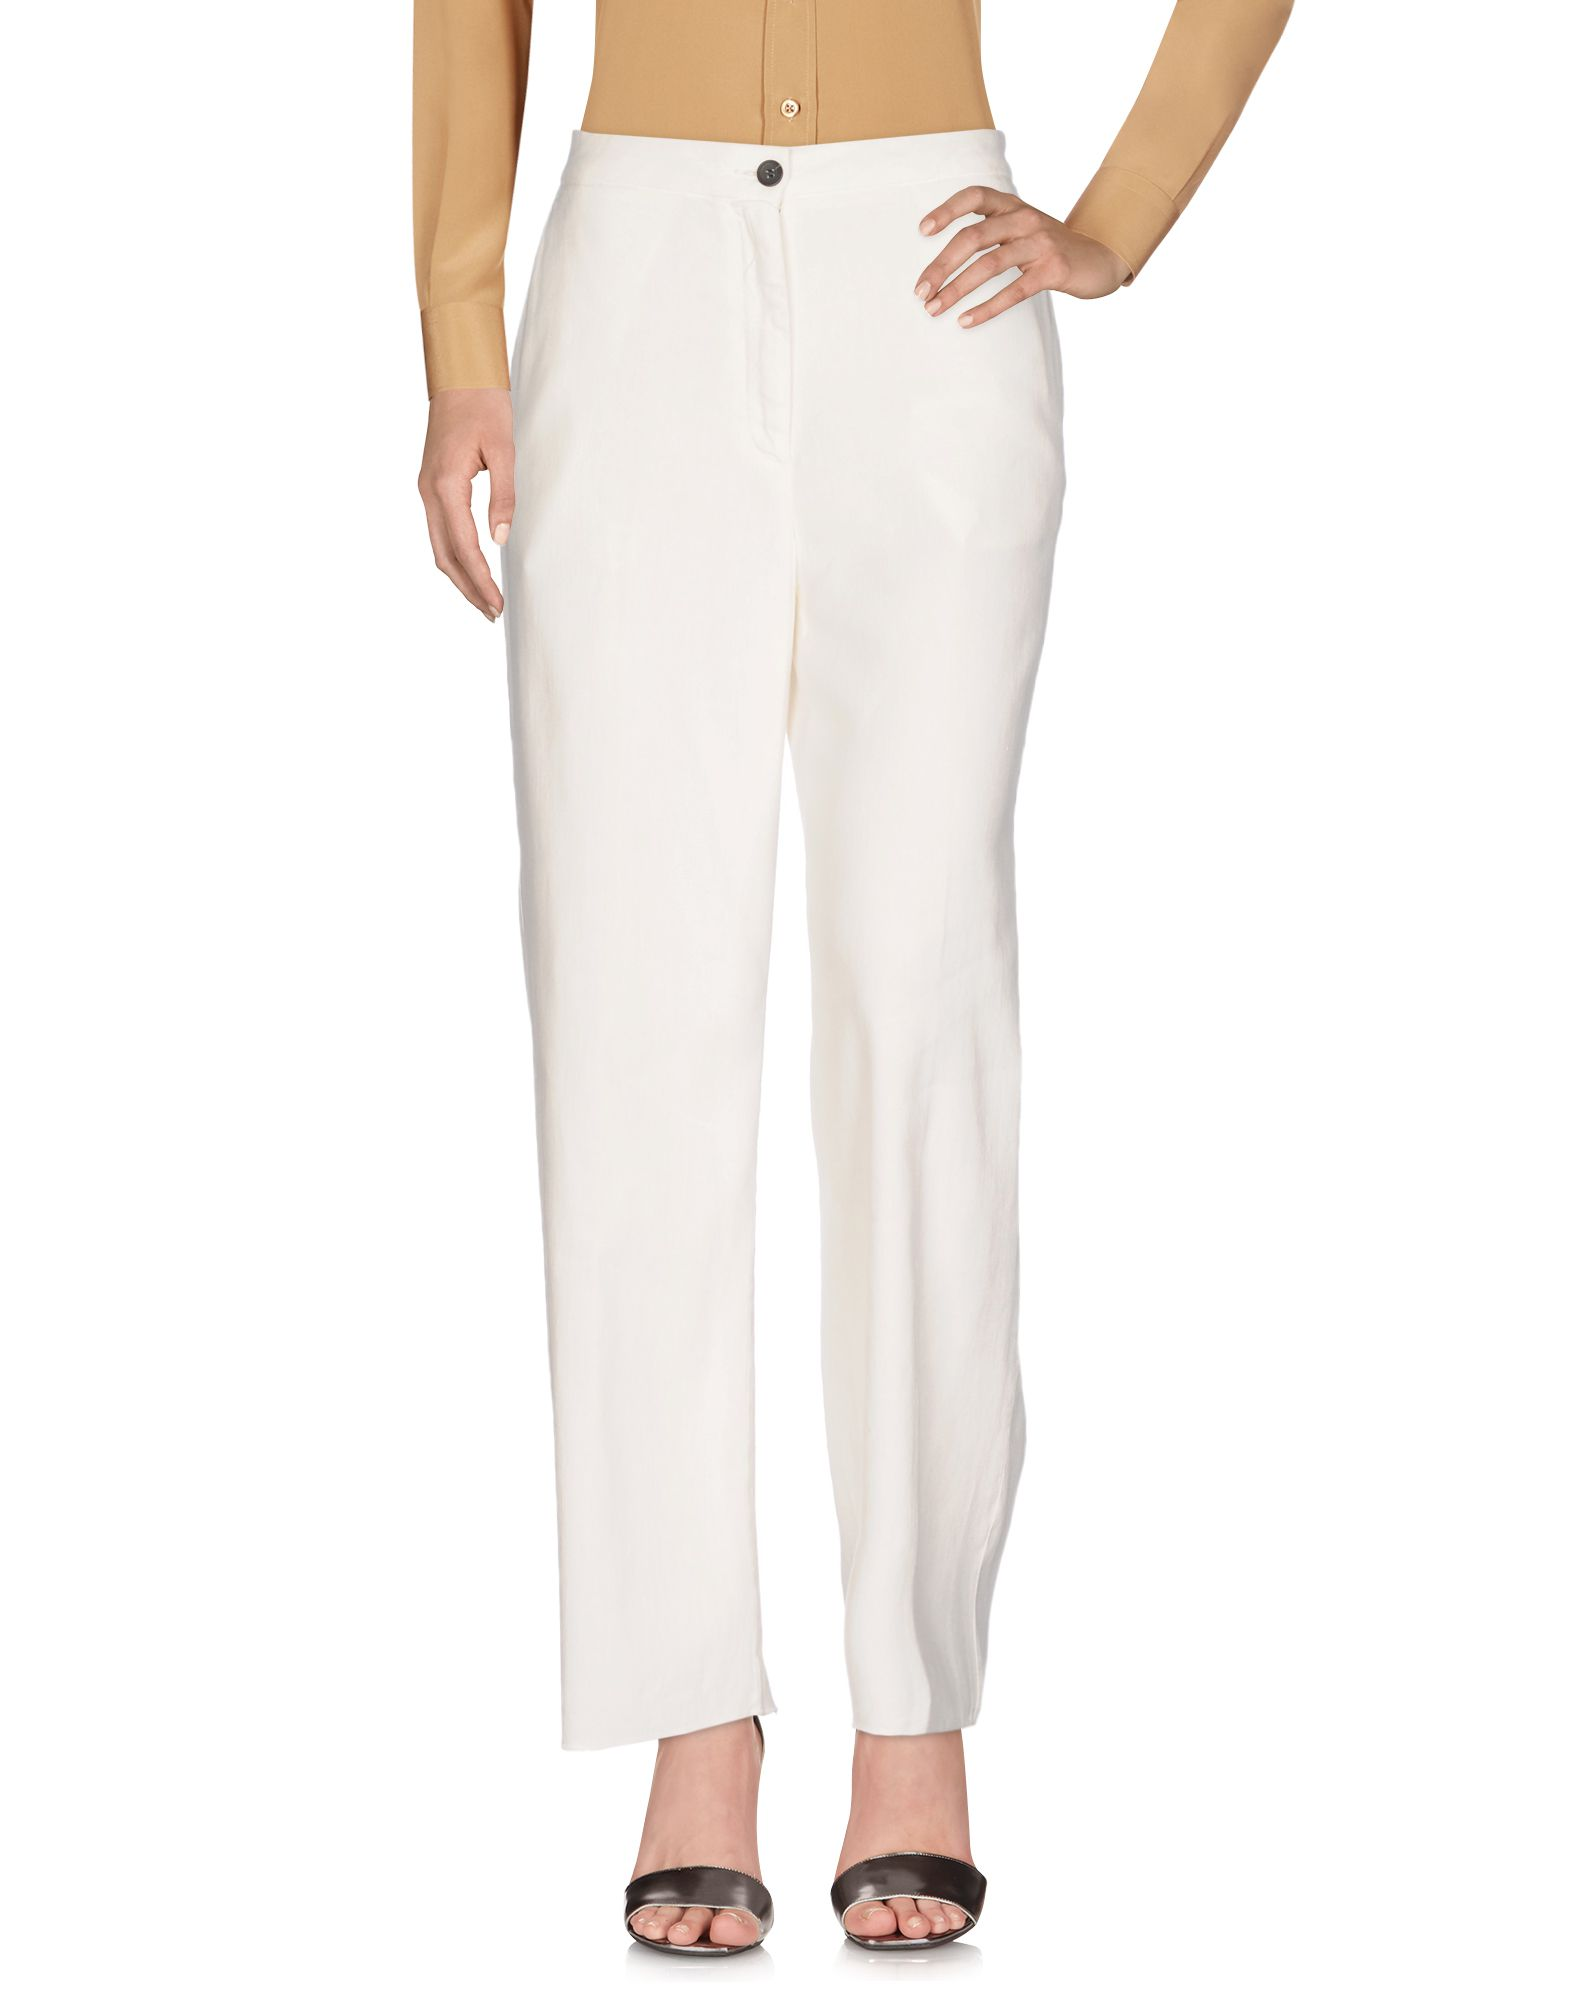 Pantalone Inx #Think Colored Donna - Acquista online su SgM371OK